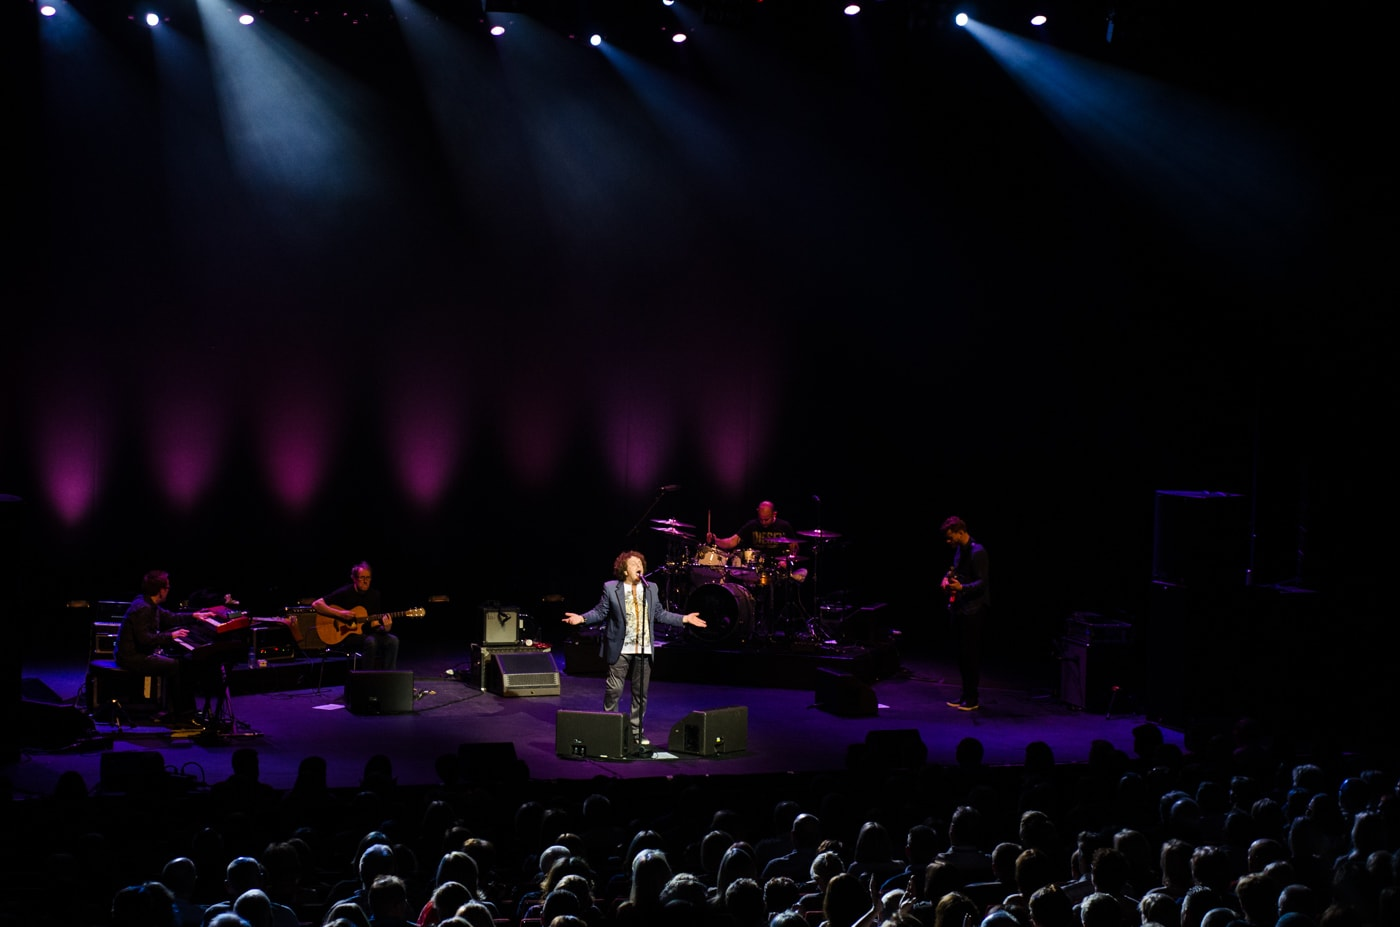 Leo Sayer at Bord Gais Energy Theatre by Sean Smyth (16-10-15) (49 of 129)